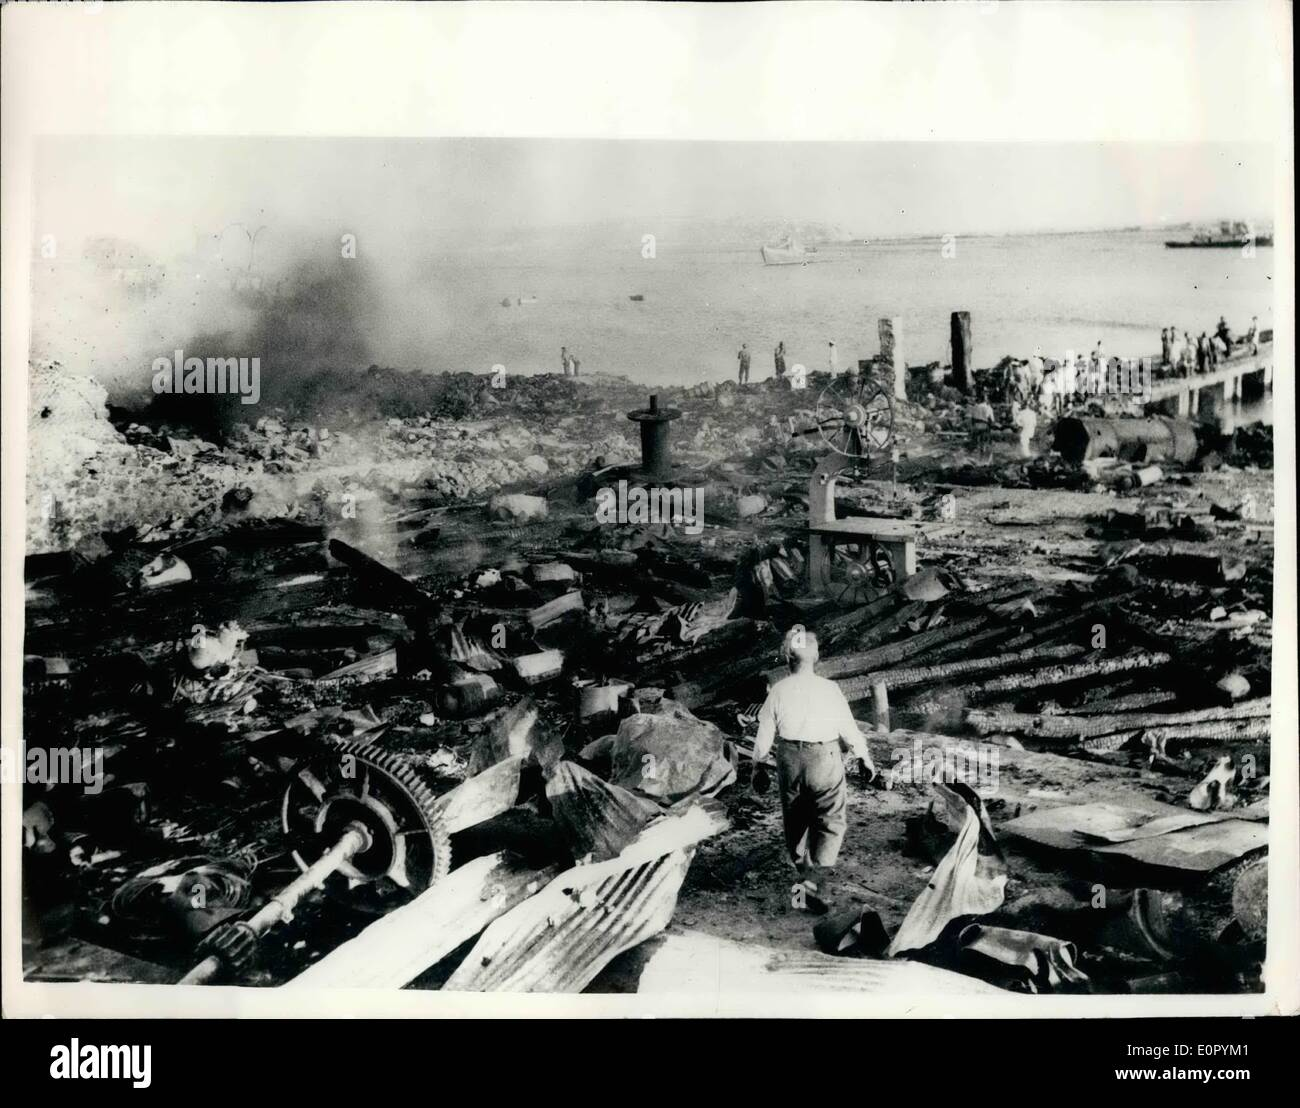 Jul. 07, 1957 - Explosives customs warehouse explodes in Pireaus. Damage estimated at one and a half million dollars.: A large area was wrecked and damage estimated at 1,500,000 U.S. Dollars was caused by a fire and explosion at the Customs Warehouse for Explosives at Perama, Pireaue, 9,000 iron bottles of gas were ruined but there were only a few minor casualties. Photo shows View of the devastated area after the explosion at Perama, Pireaus. - Stock Image